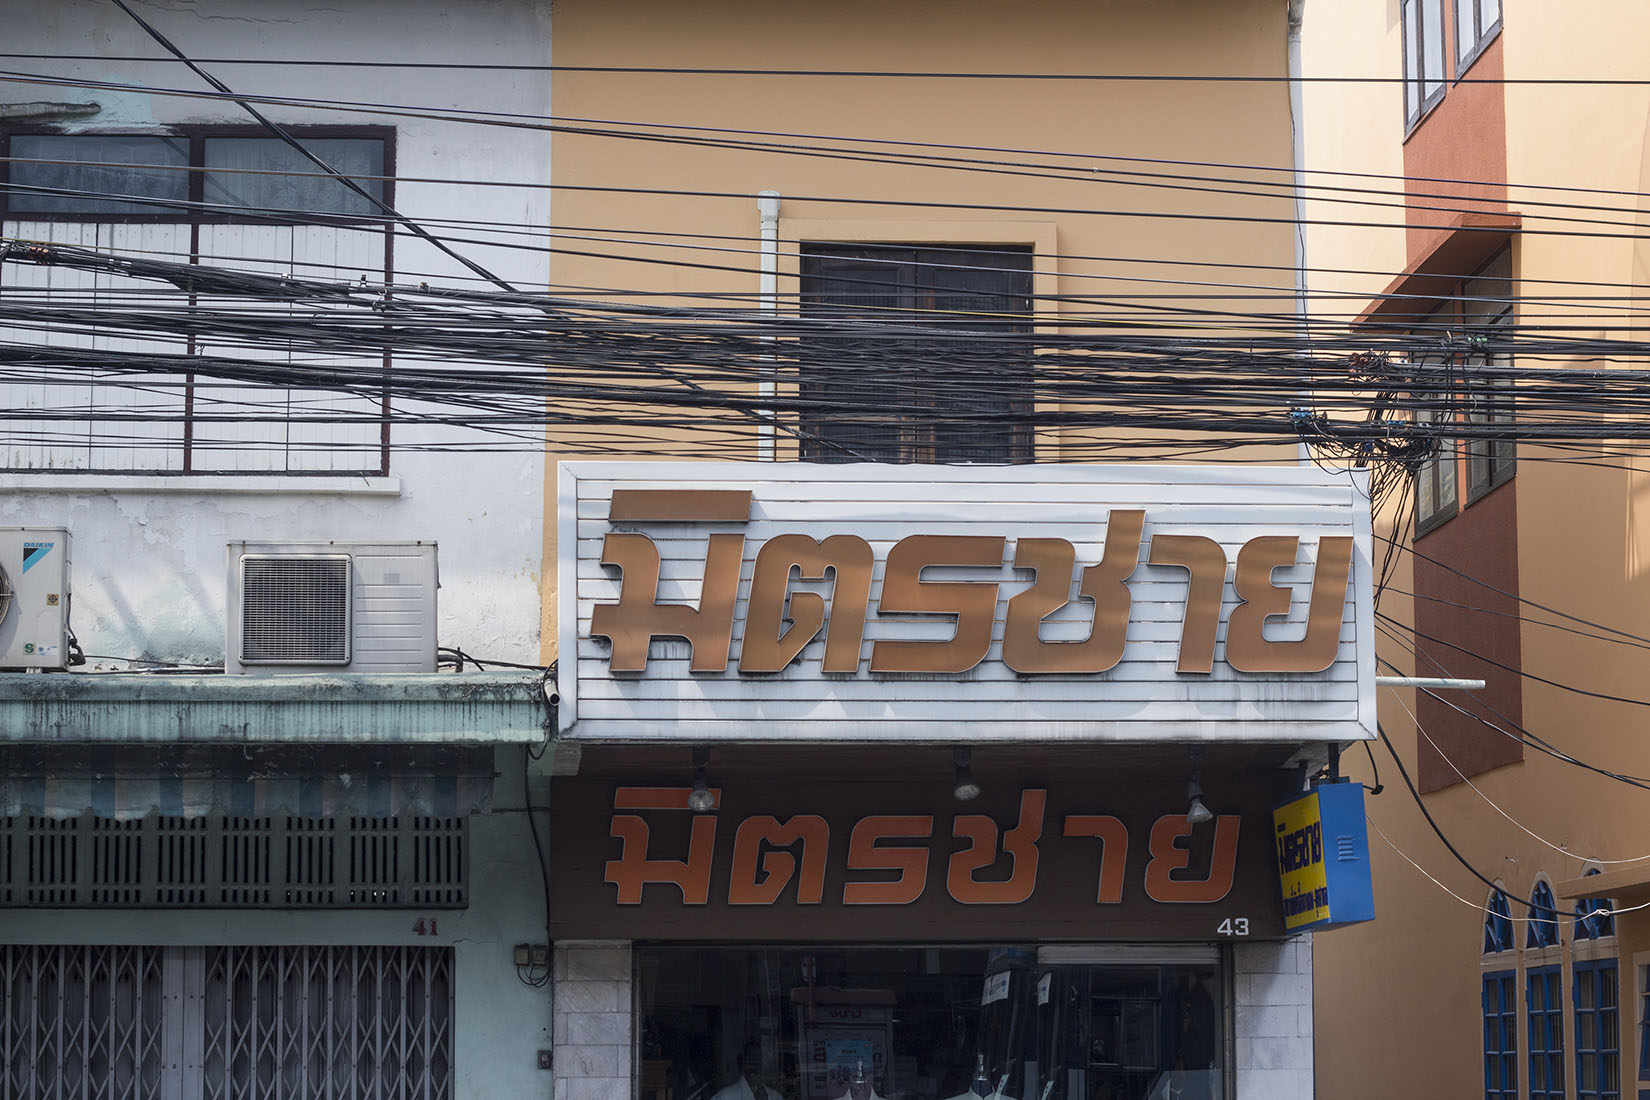 Shop sign, Thai typography, telephone lines, Bangkok